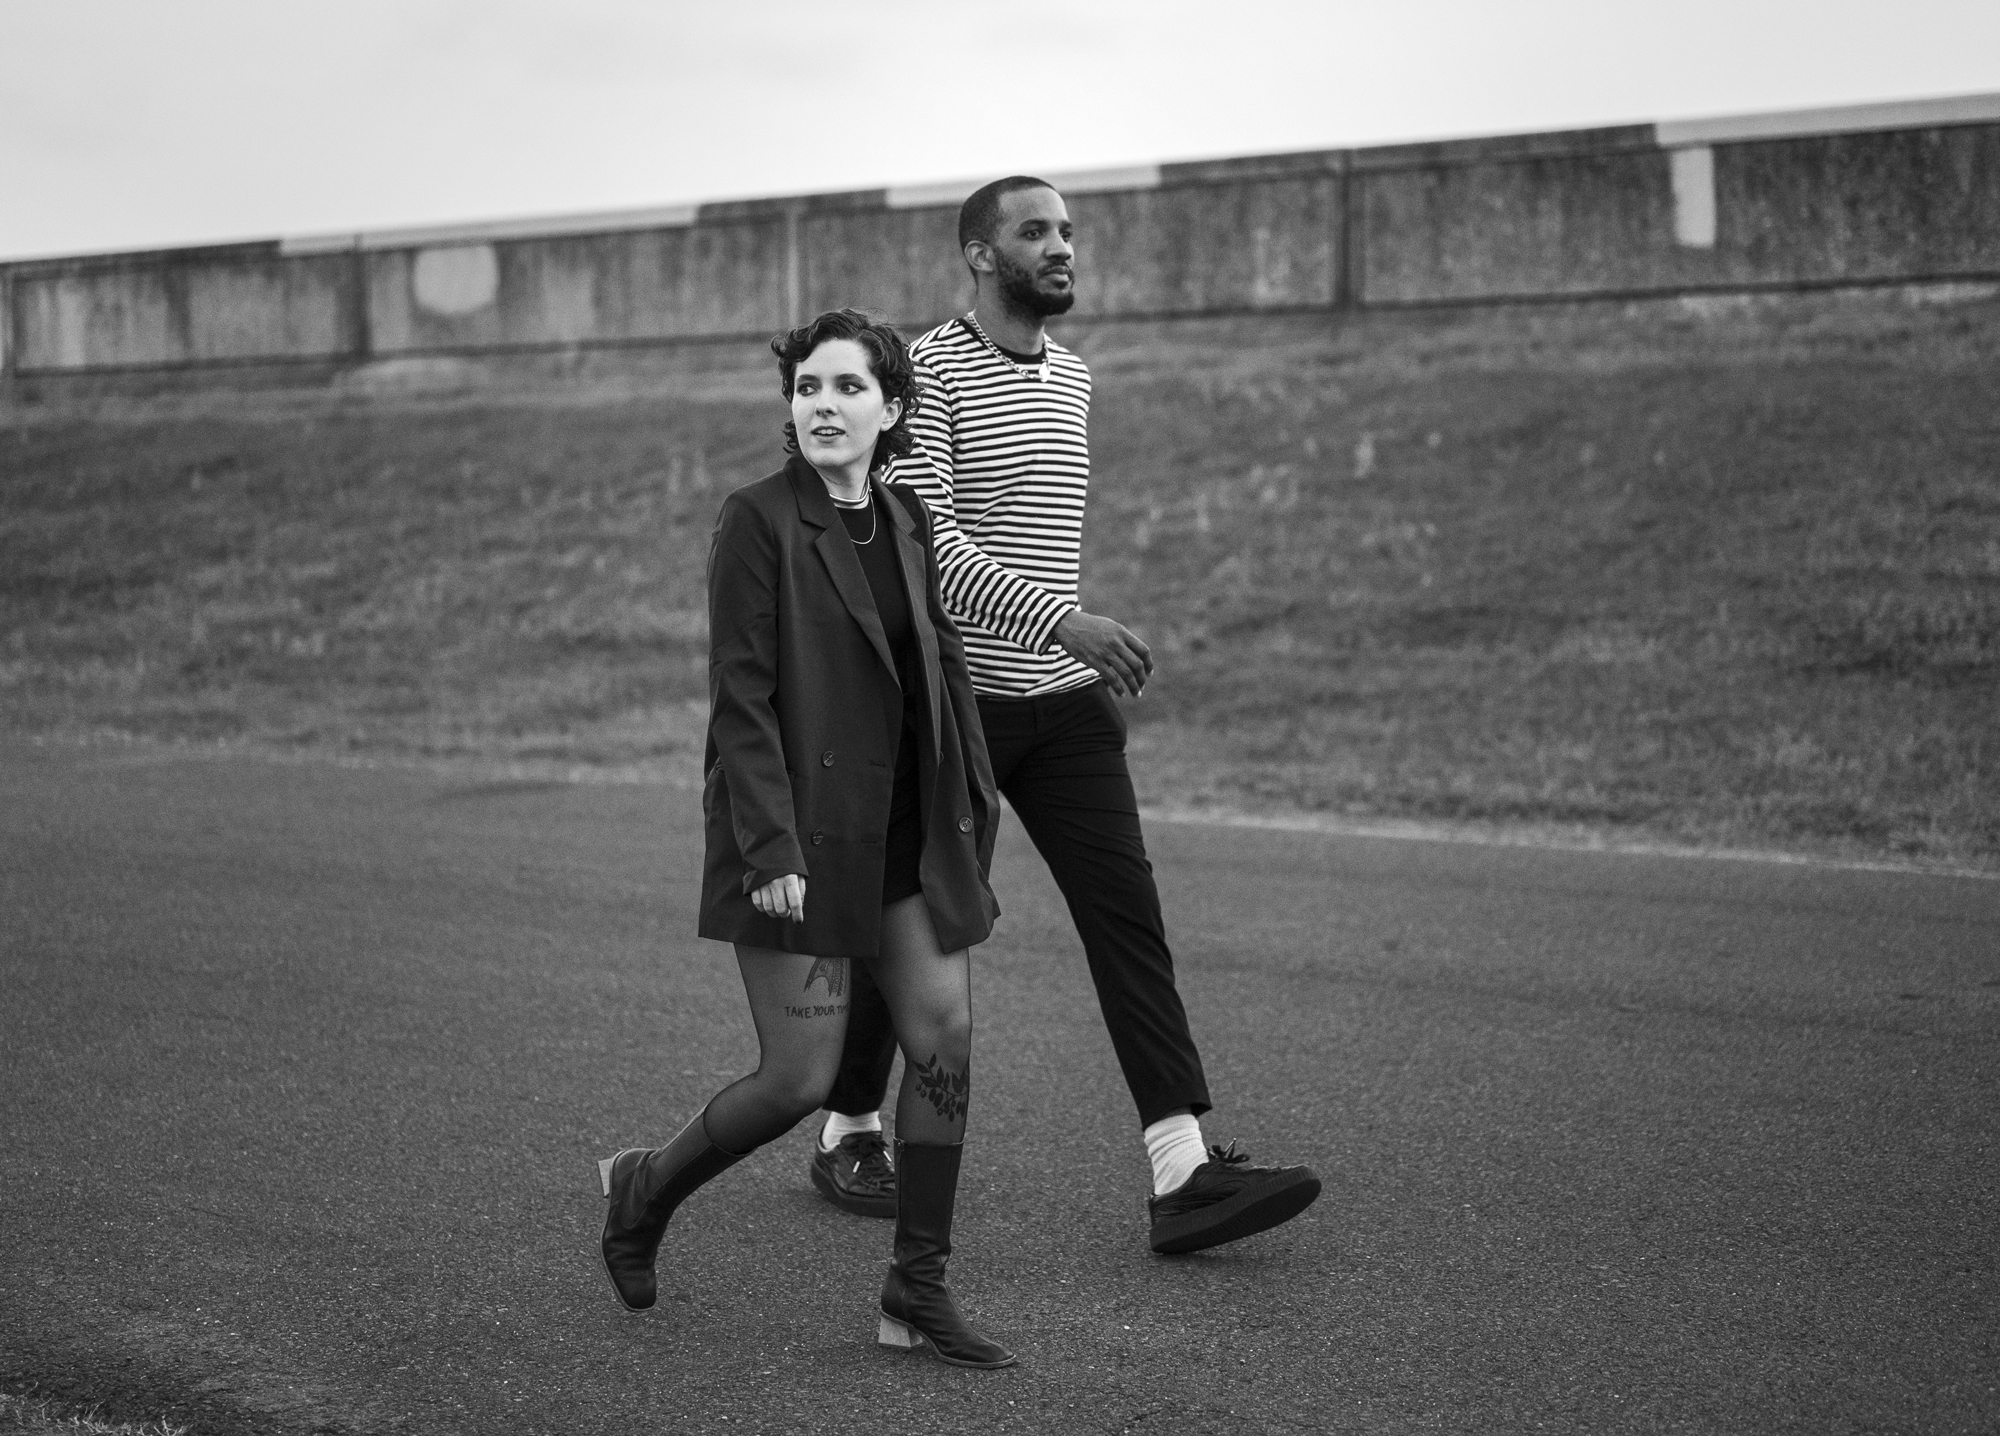 A black and white photo of Claire Givens and Jeremy Phipps, members of the band People Museum. They are walking next to each other and the levee is visible behind them. Claire is on the left; she's light-skinned and has dark brown hair. She's wearing a long black jackets, black tights, and long, dark boots, and there are tattoos on her legs visible through her tights. She's looking behind her. Jeremy is on the right; he's dark-skinned and has short hair and a beard. He's wearing a long-sleeved black and white striped shirt and black pants. He's looking ahead of him. Photo by Katie Sikora.